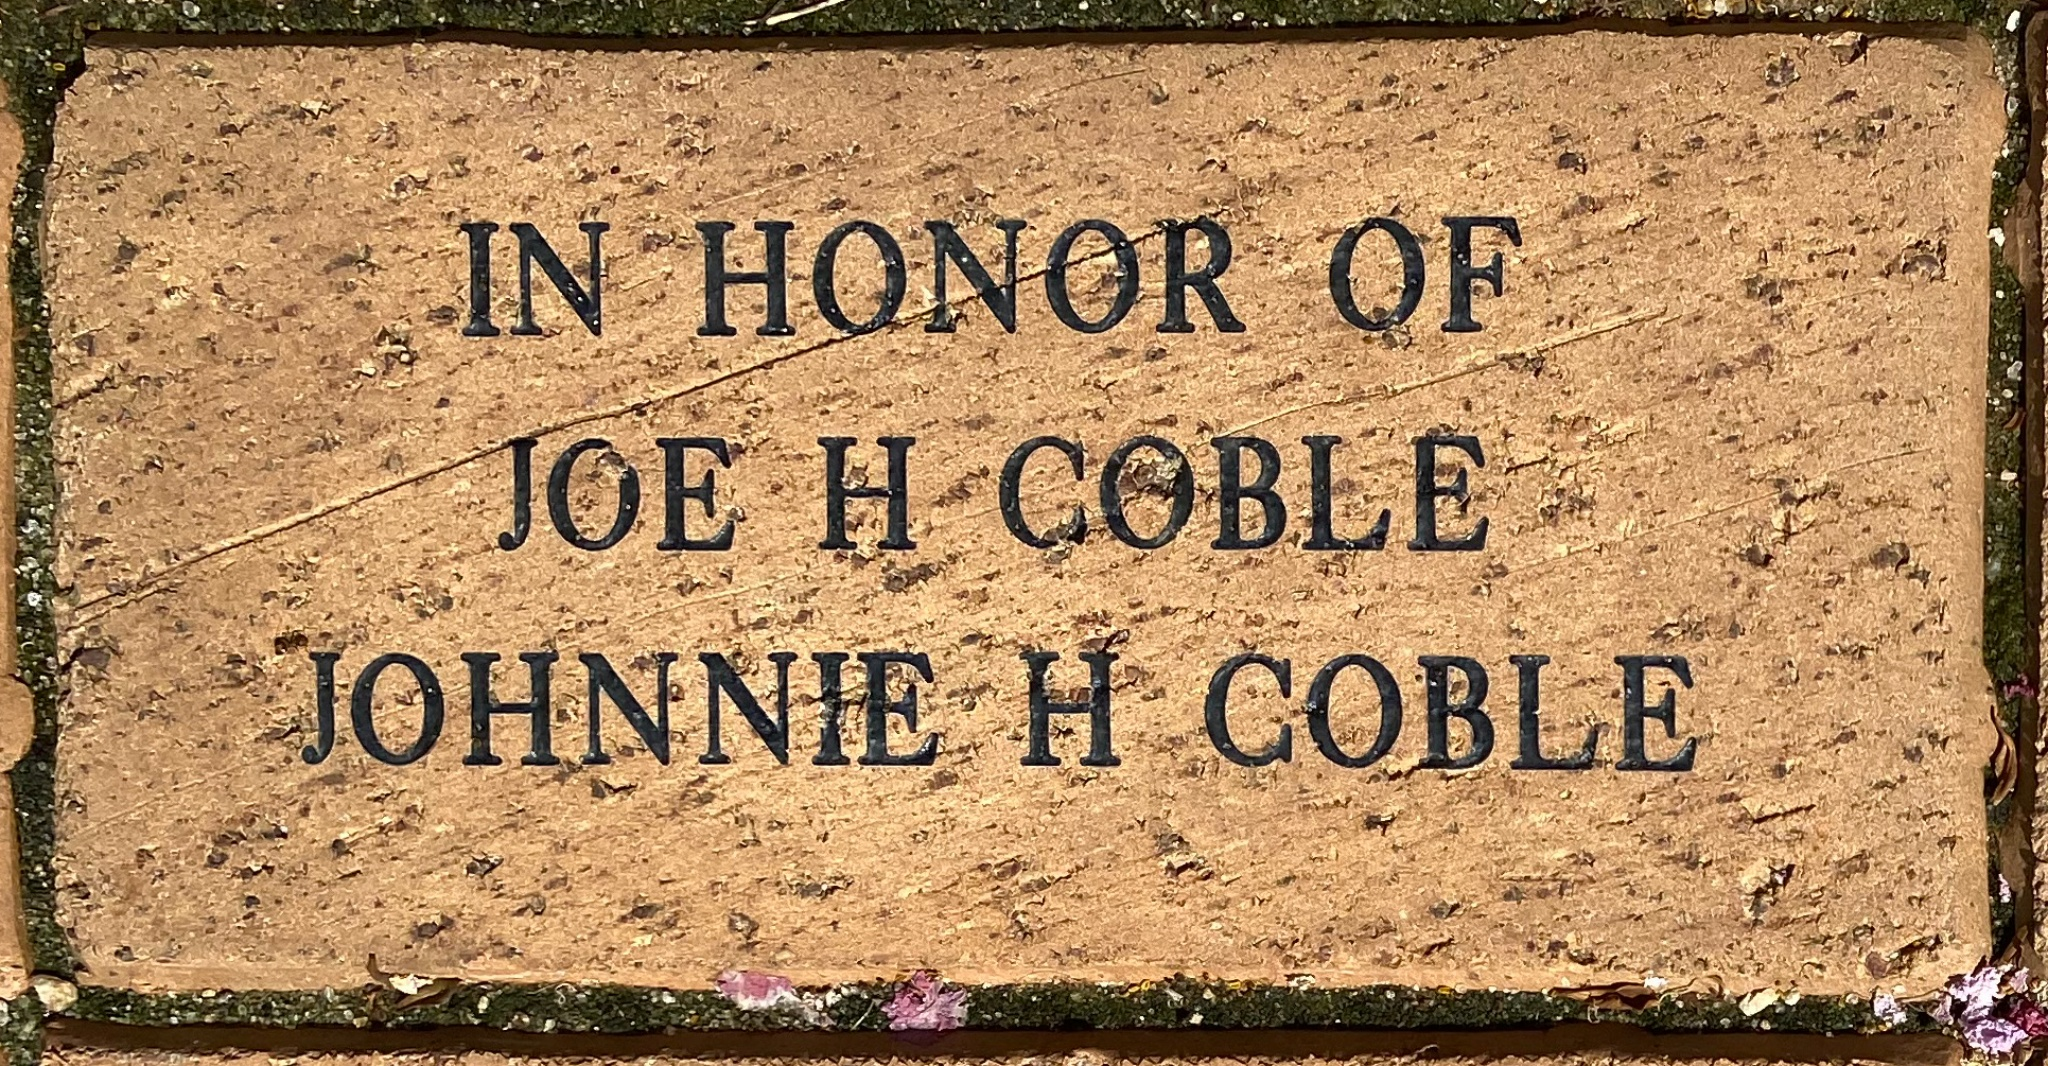 IN HONOR OF JOE H COBLE JOHNNIE H COBLE